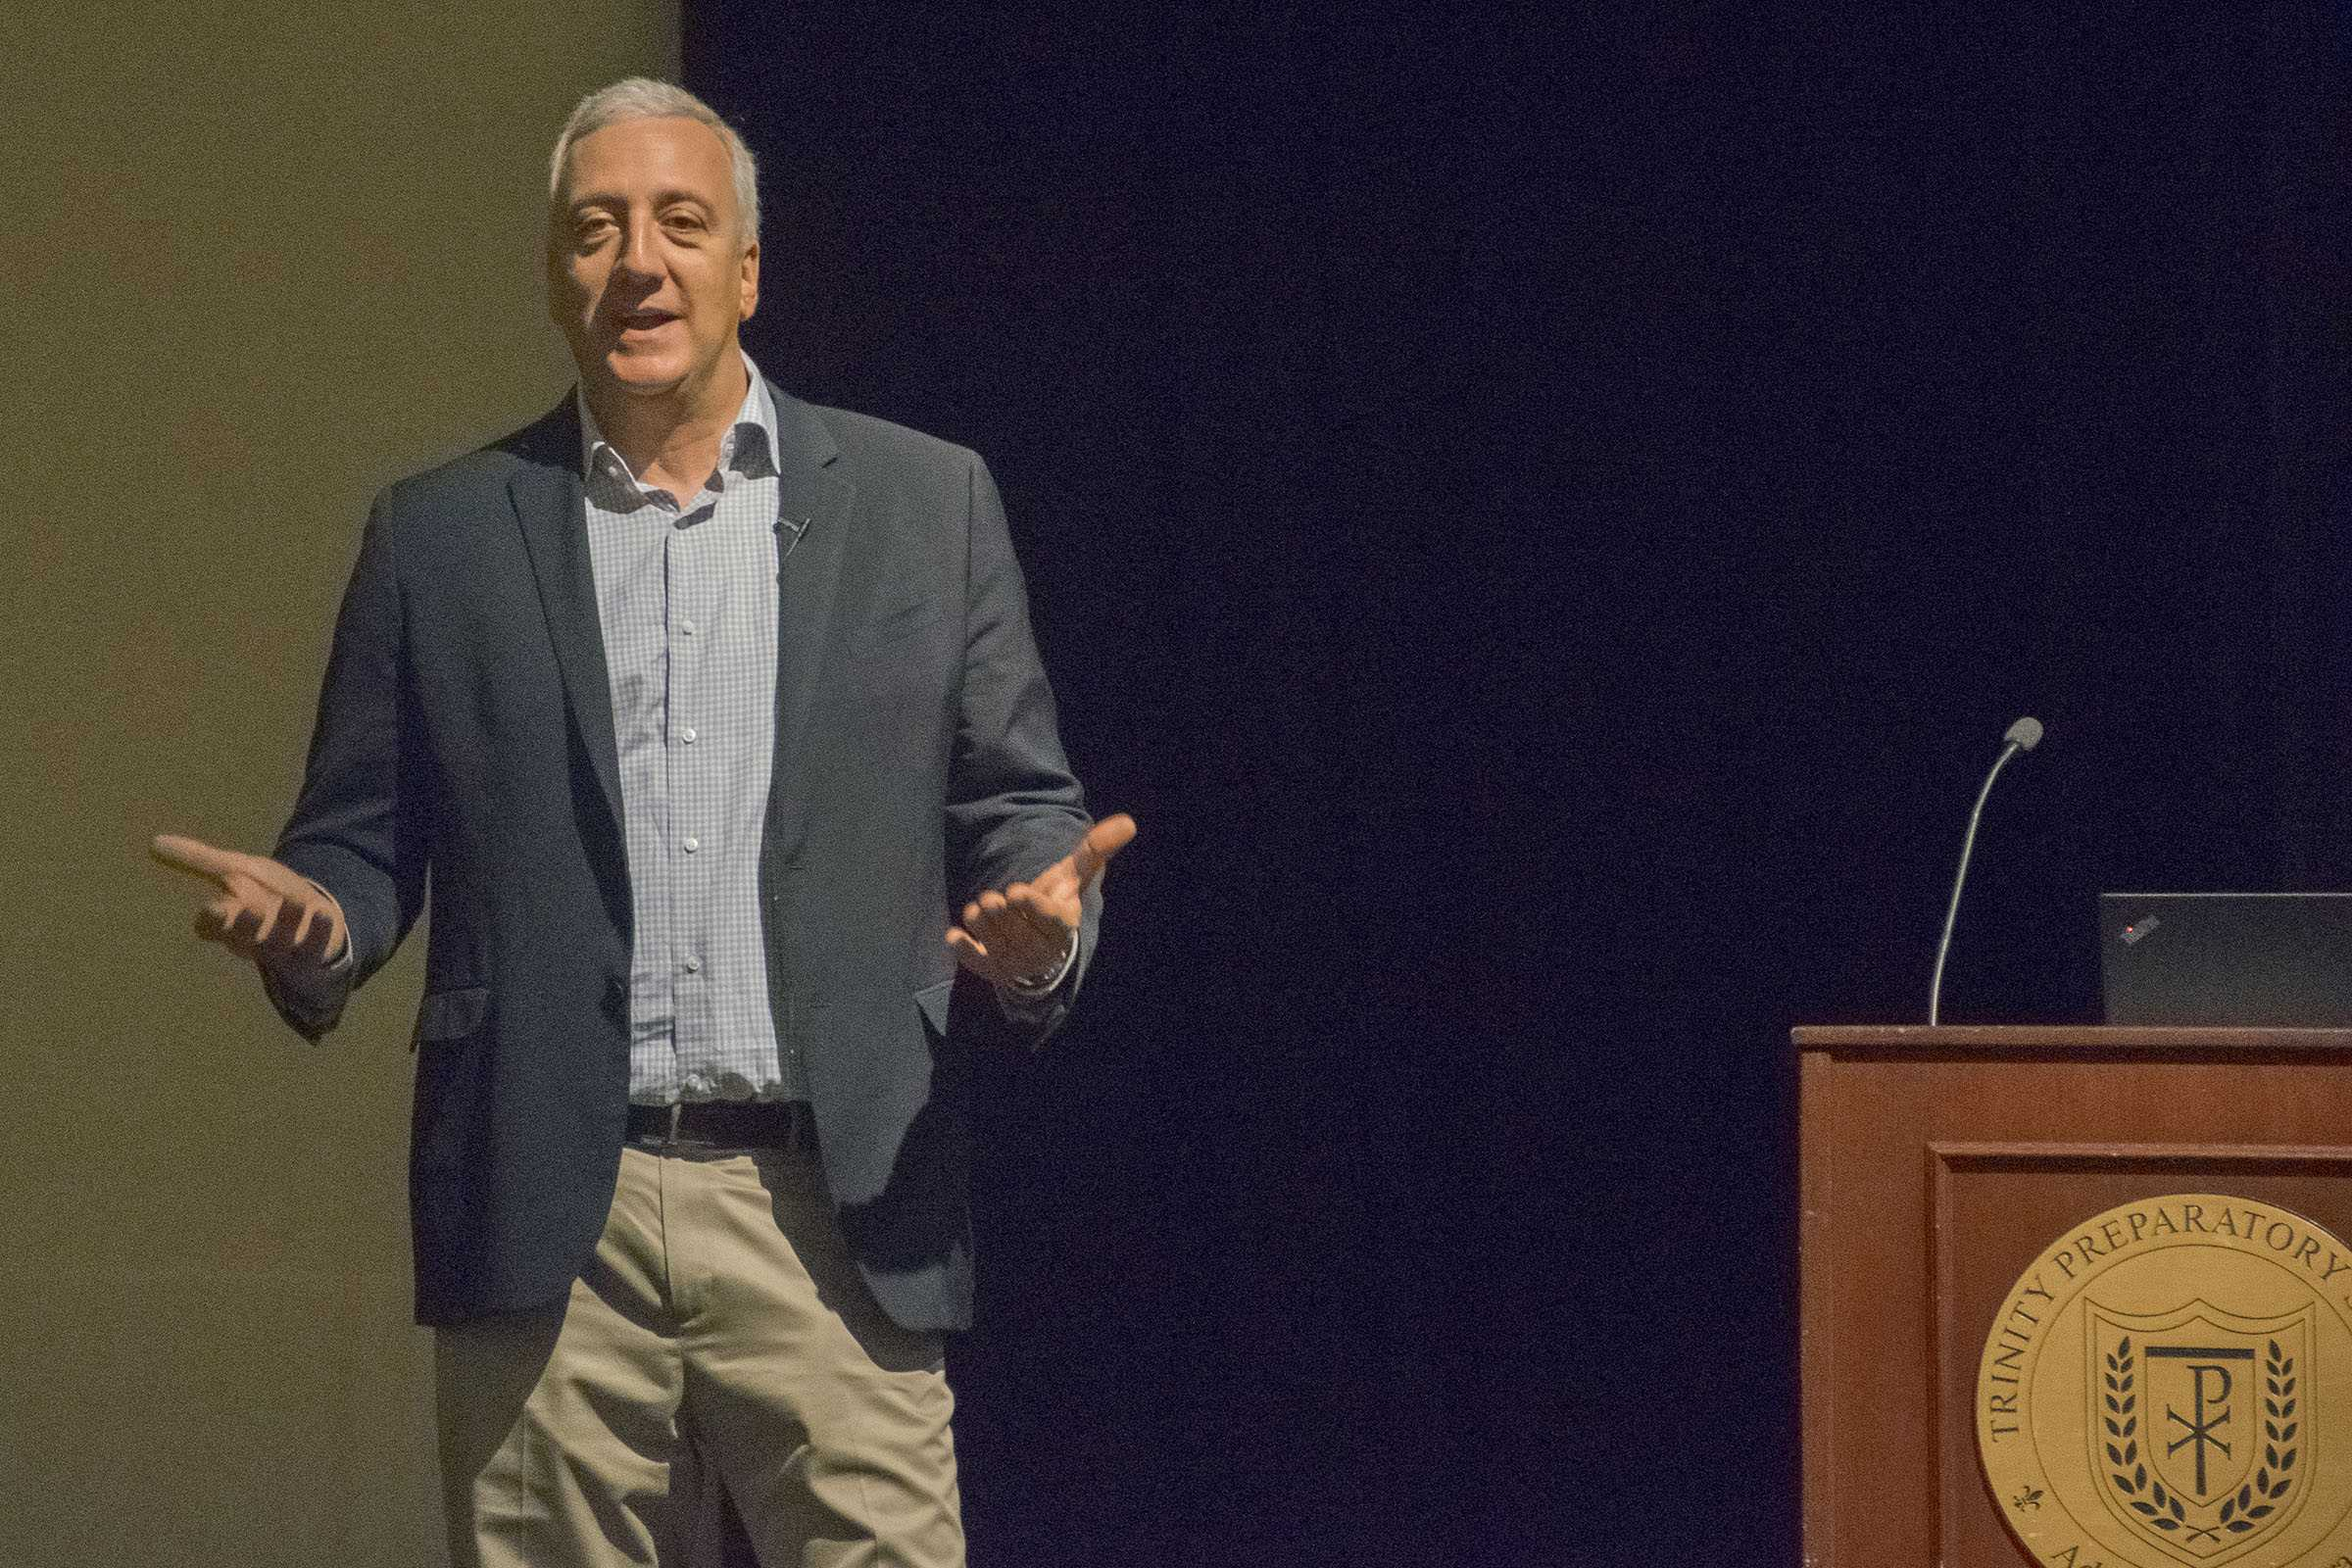 Massimino delivers an inspiring speech to a school wide assembly.